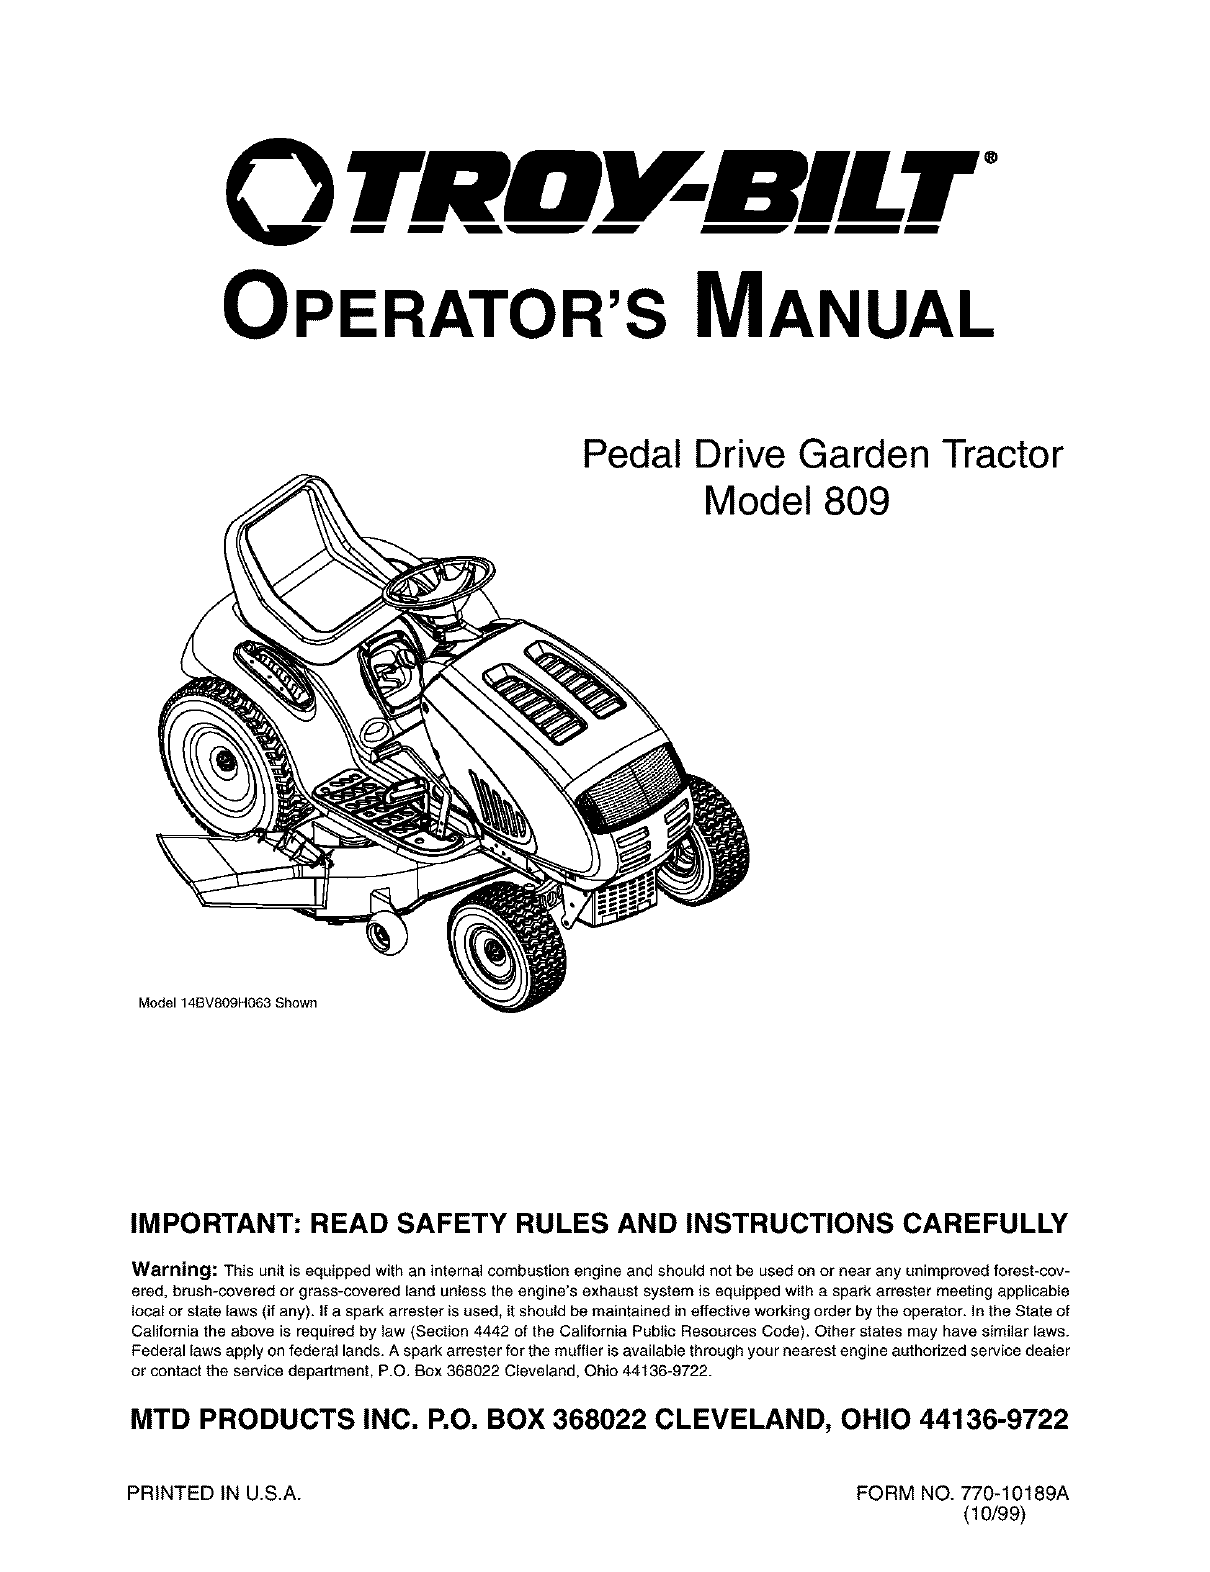 J26 Troy Bilt Wiring Diagram Starting Know About Mtd Manual Troybilt 14ay809p063 User Garden Tractor Manuals And Guides Rh Usermanual Wiki